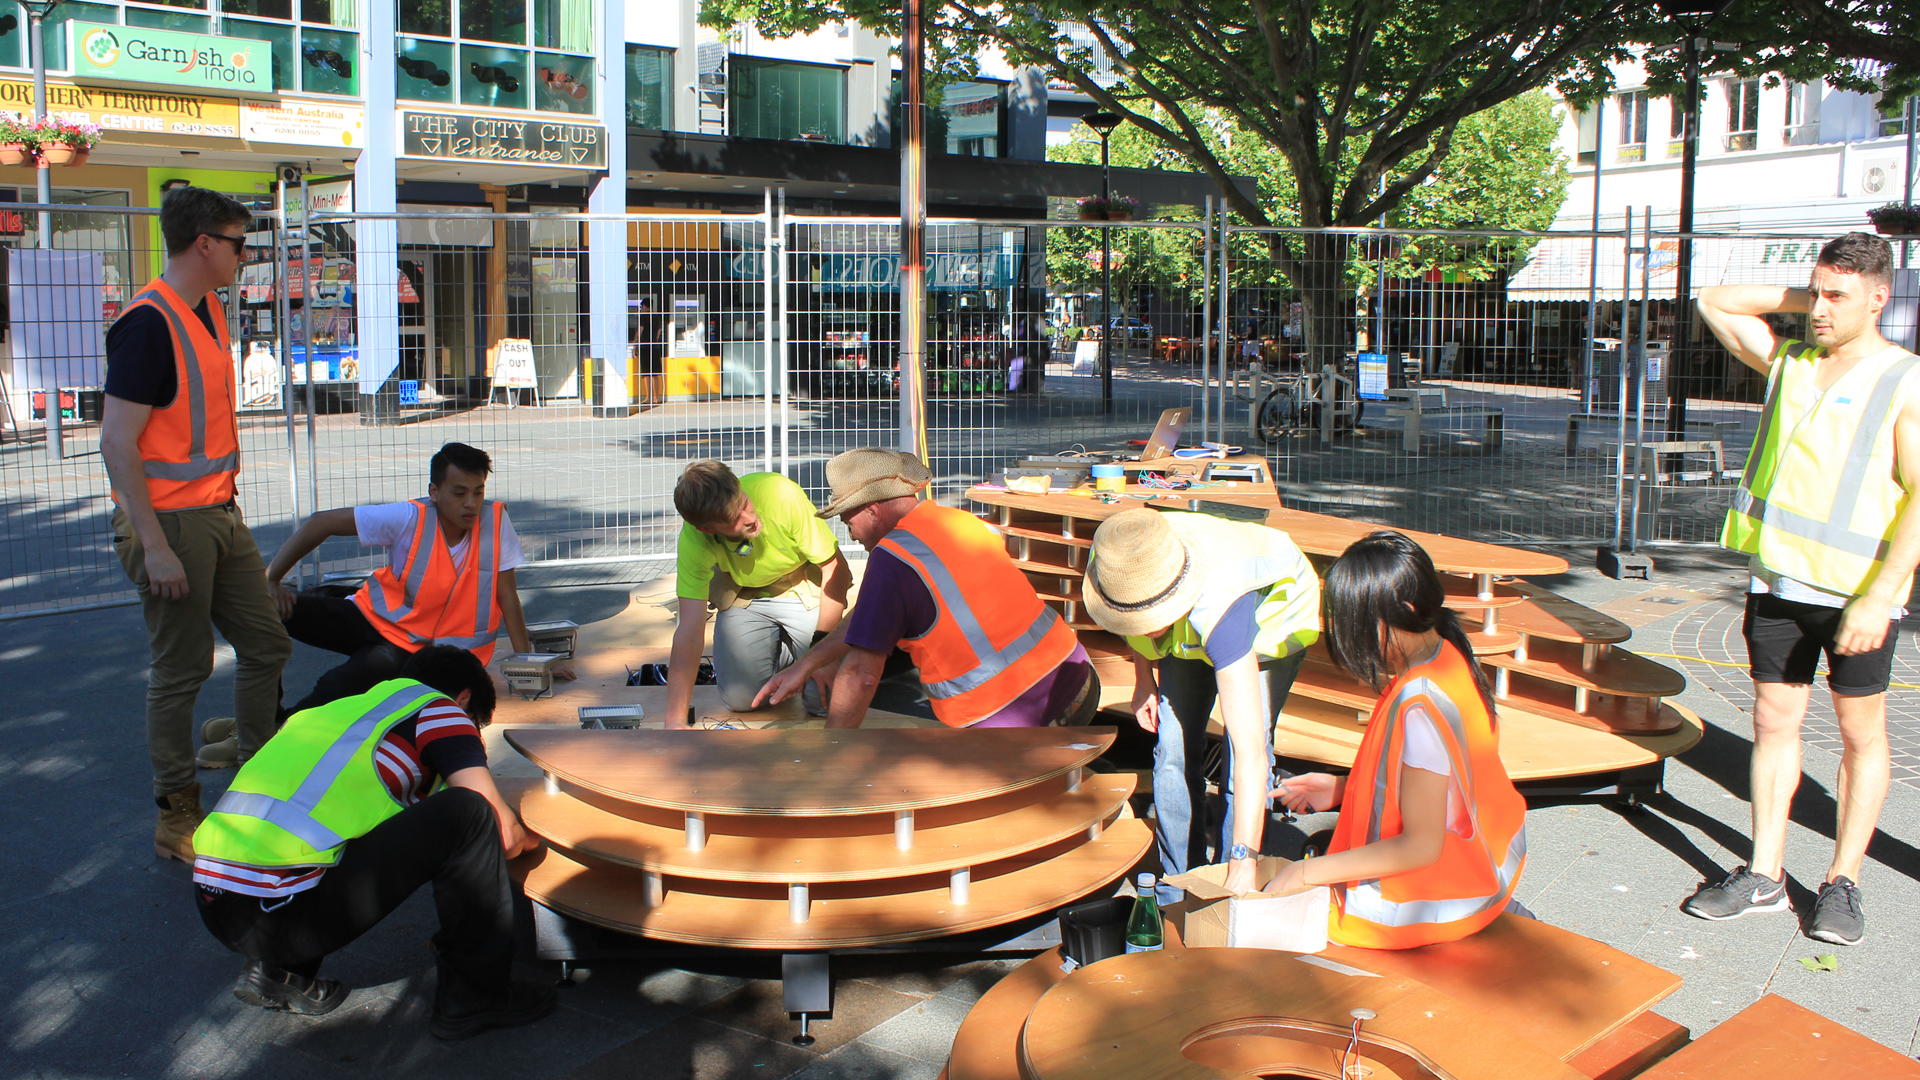 University staff and students install the Pavilion X project at Canberra's Garema Place.